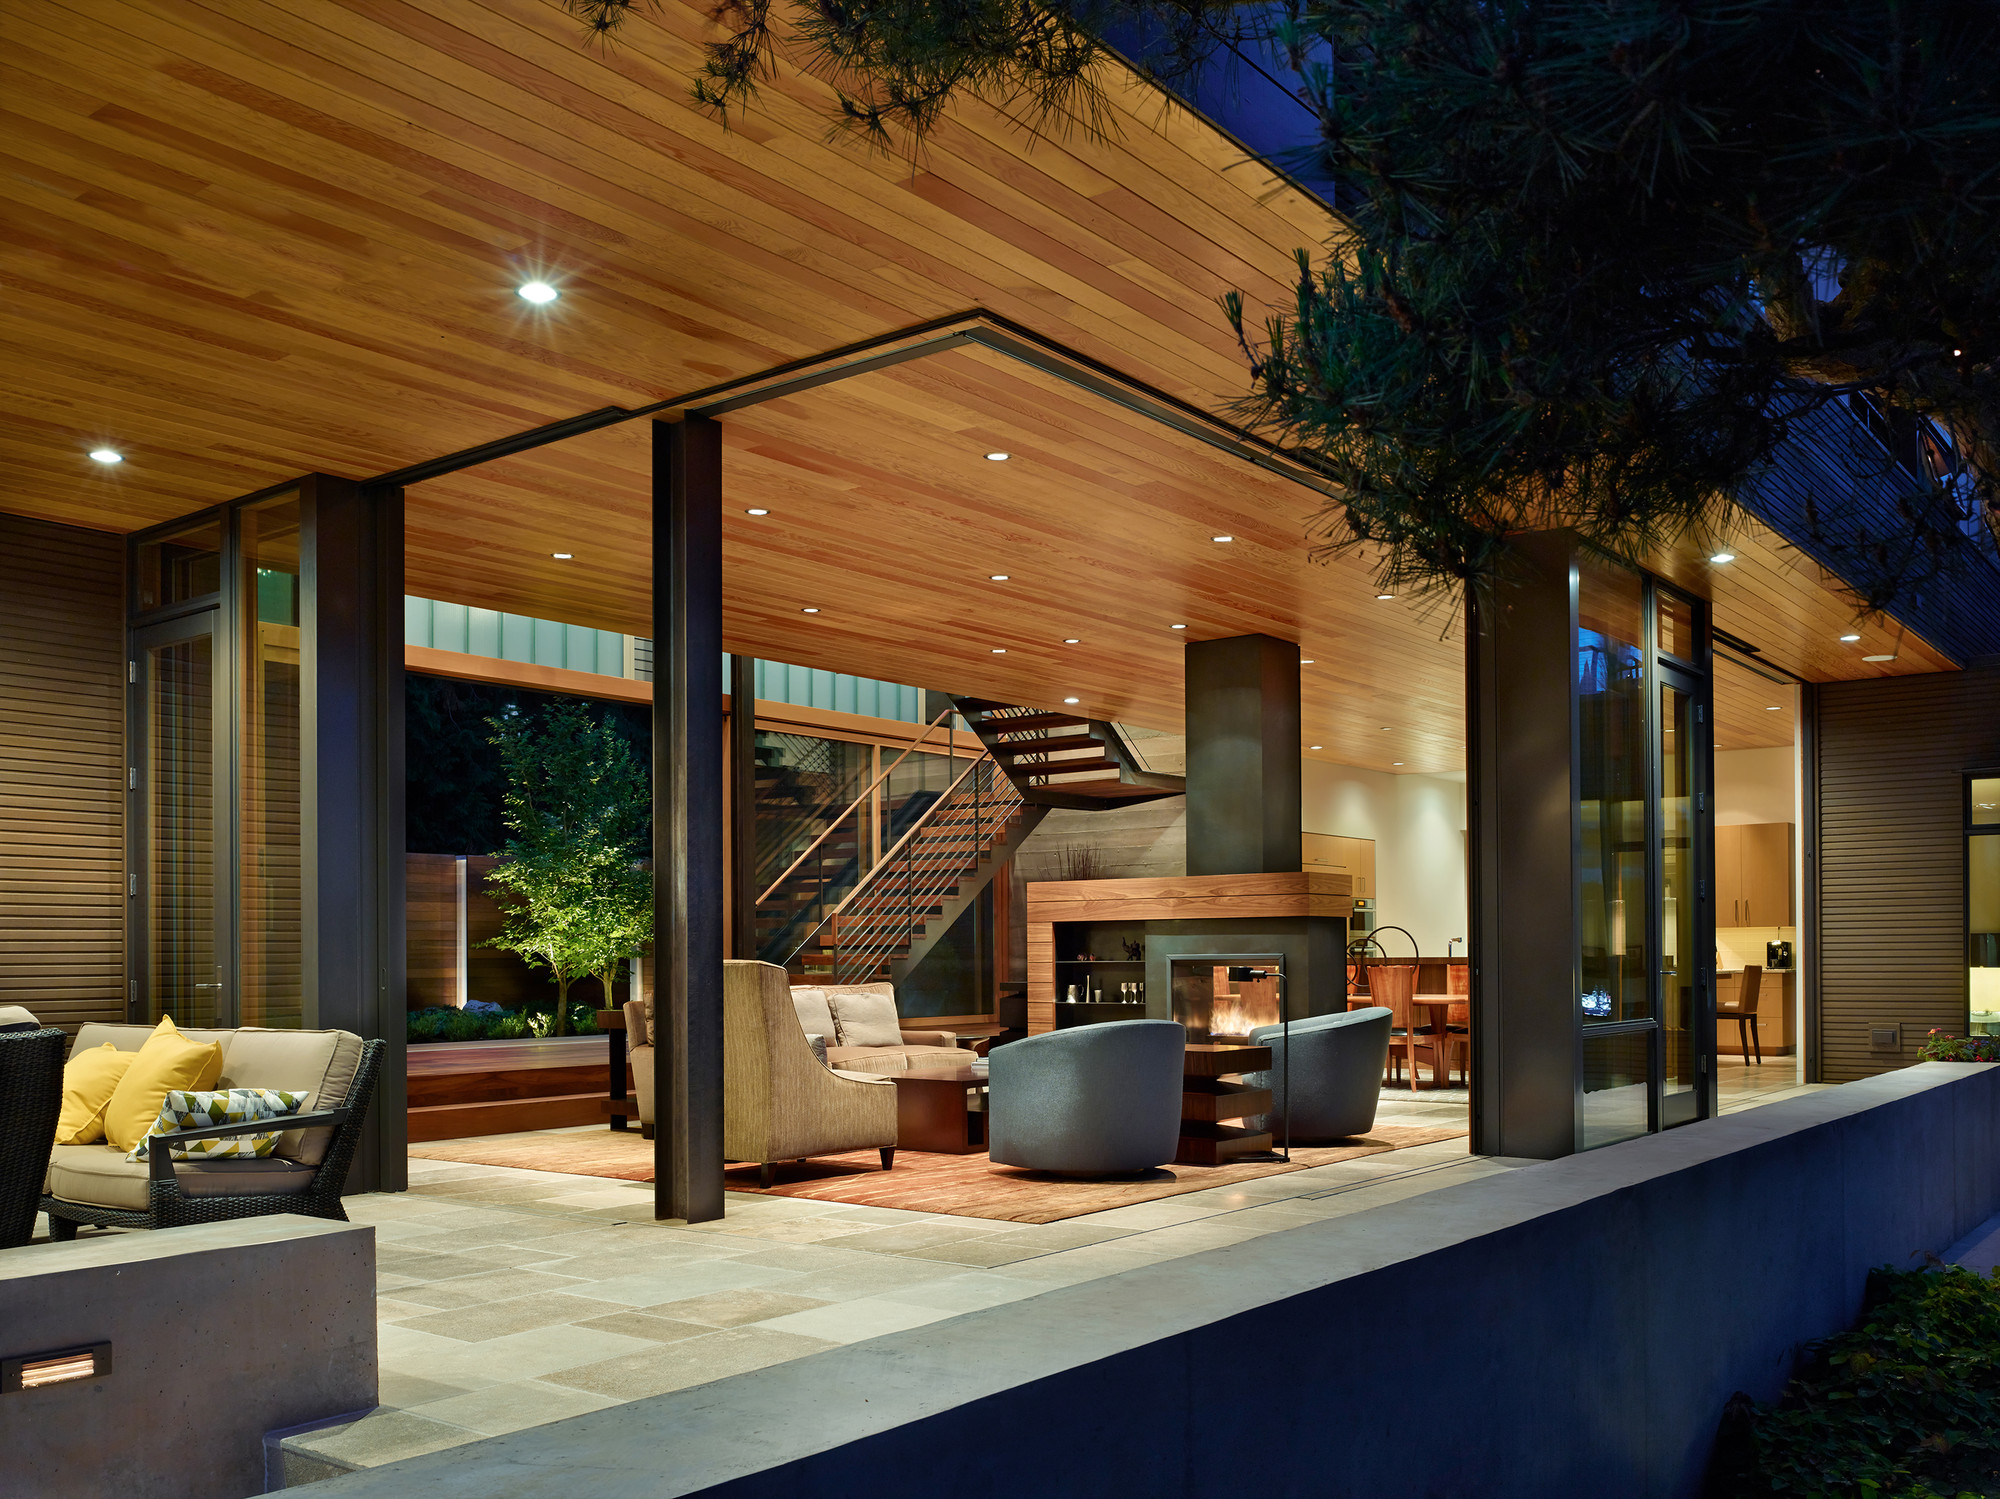 courtyard house / deforest architects | archdaily